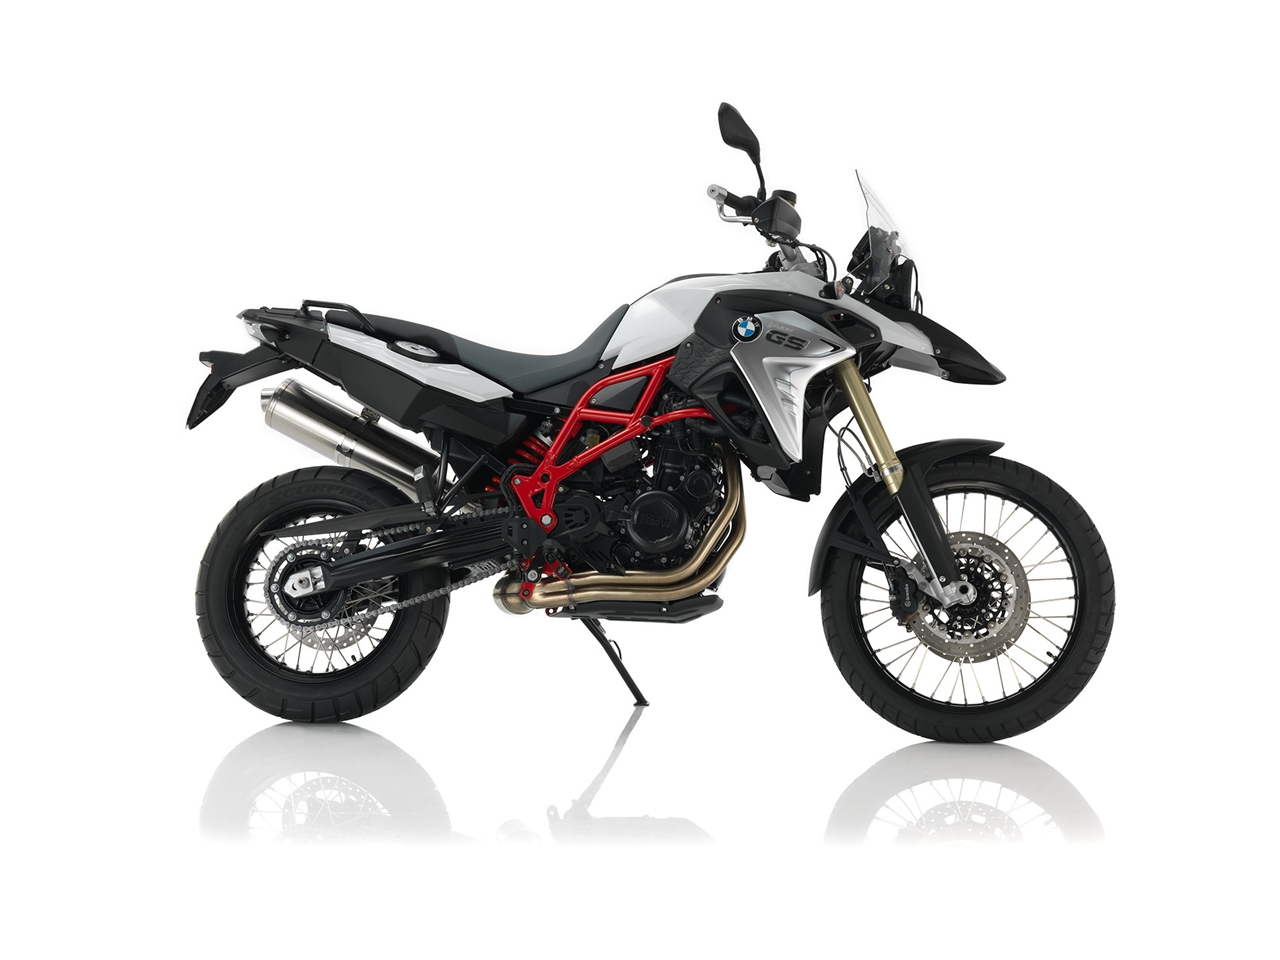 Picture for category F800GS (2013-2015)